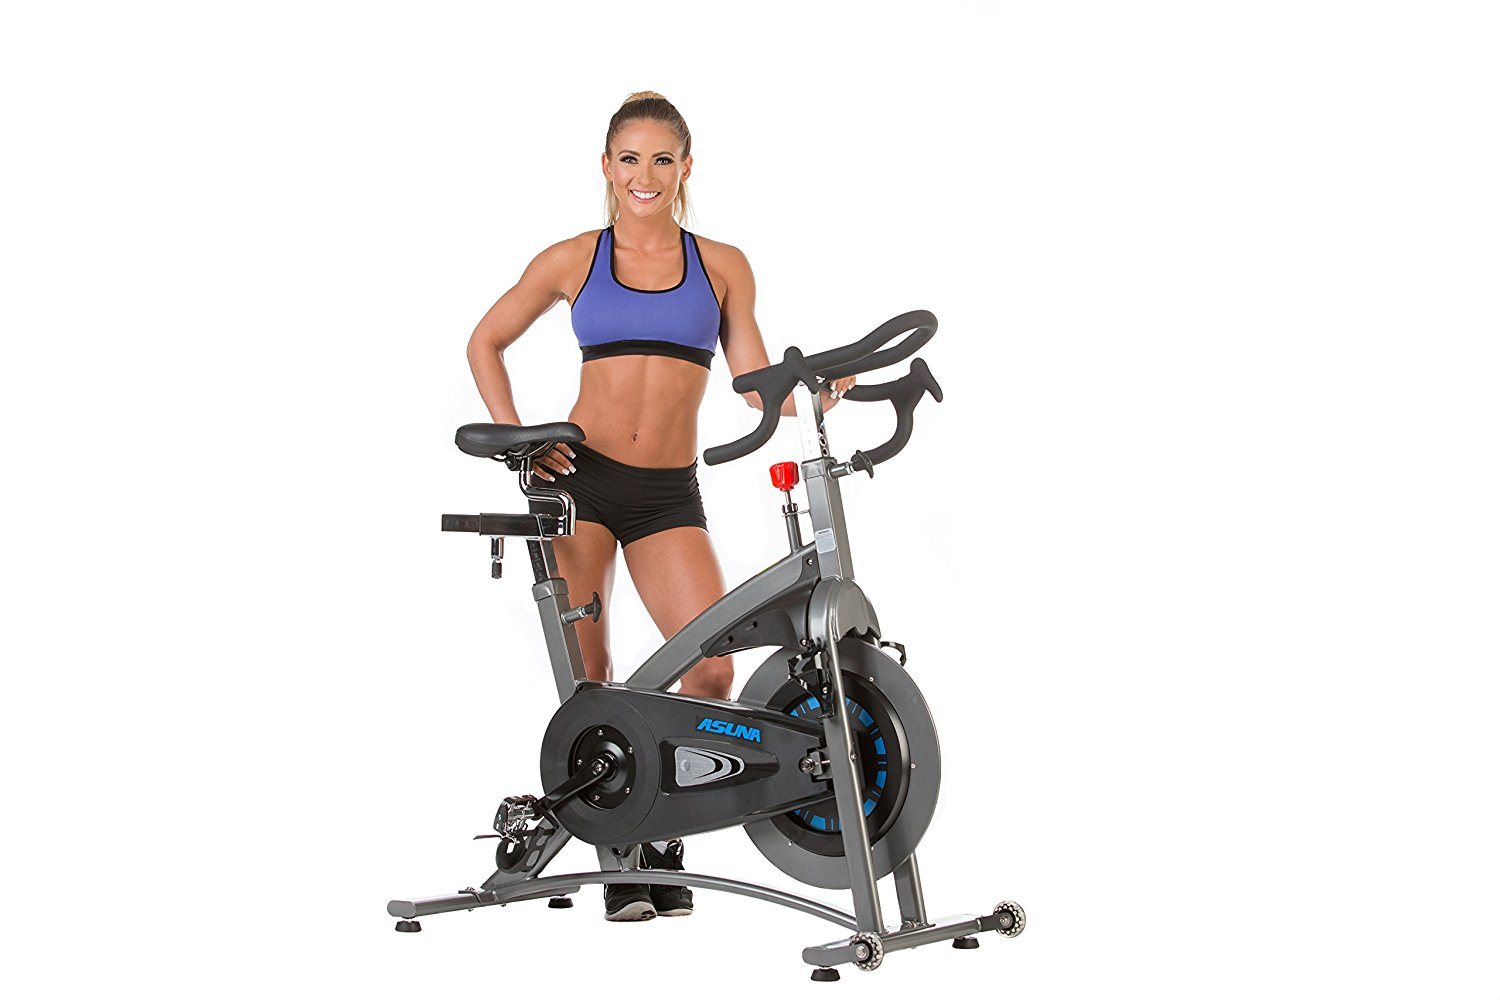 ASUNA Magnetic Belt Drive Commercial Indoor Cycling Trainer Exercise Bike 5100 by ASUNA